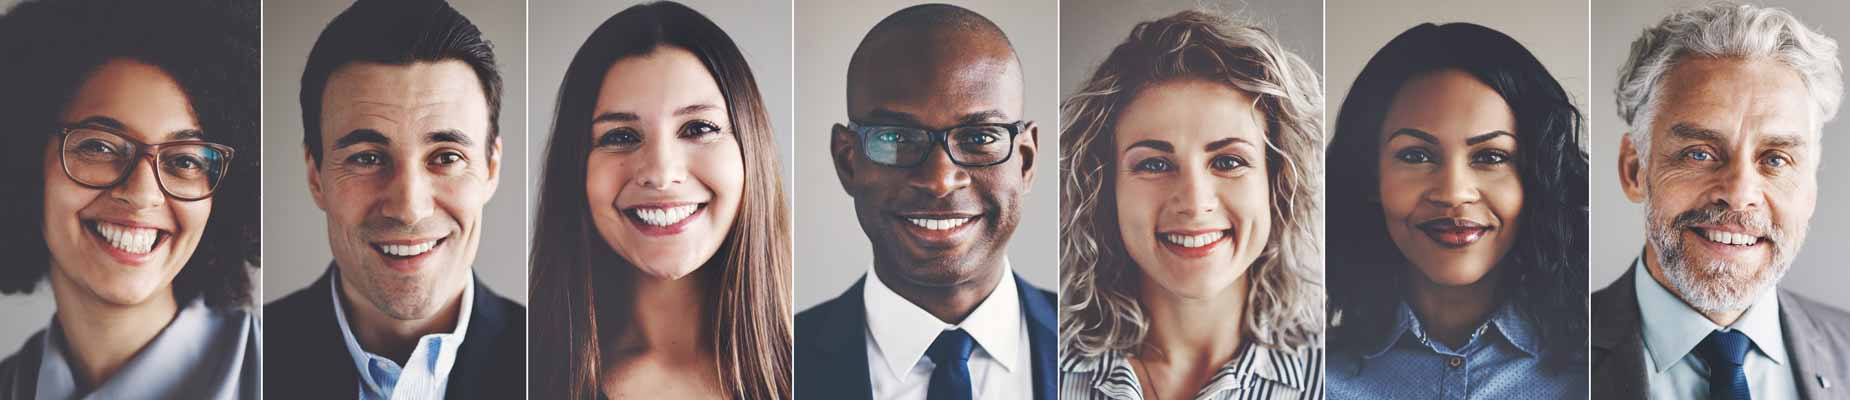 HR consulting success testimonials showing 7 happy people